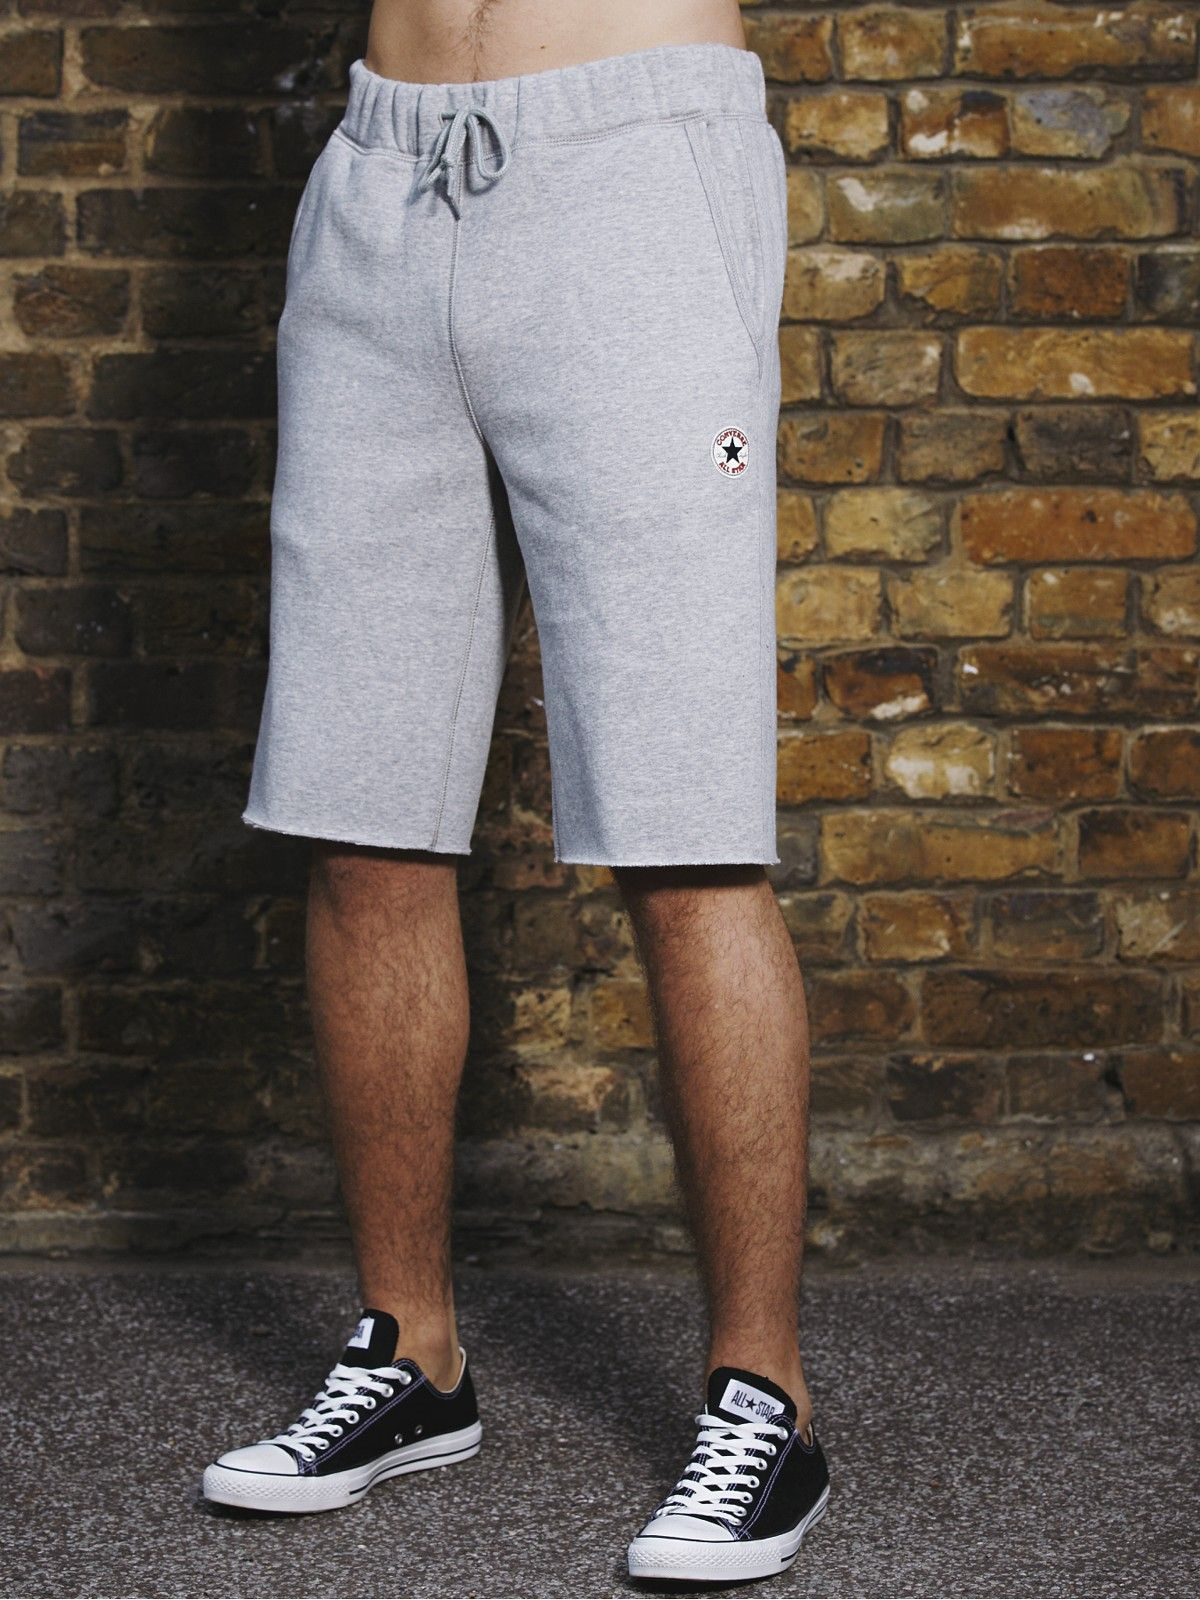 Grey Converse Mens Sweat Shorts | Sweats | Pinterest